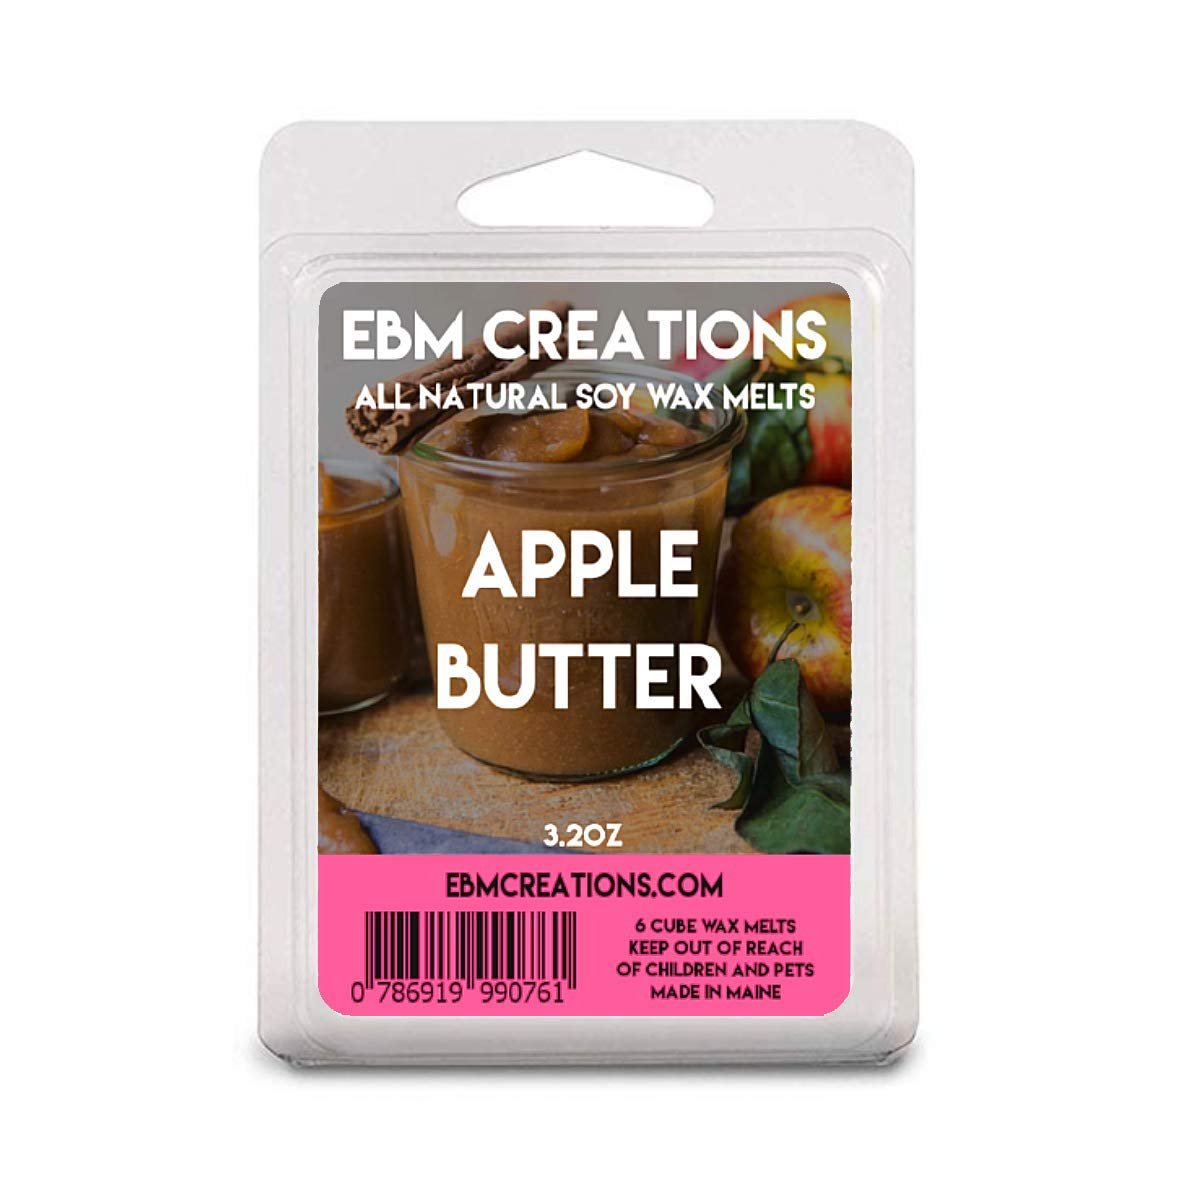 Apple Butter - Scented All Natural Soy Wax Melts - 6 Cube Clamshell 3.2oz Highly Scented!